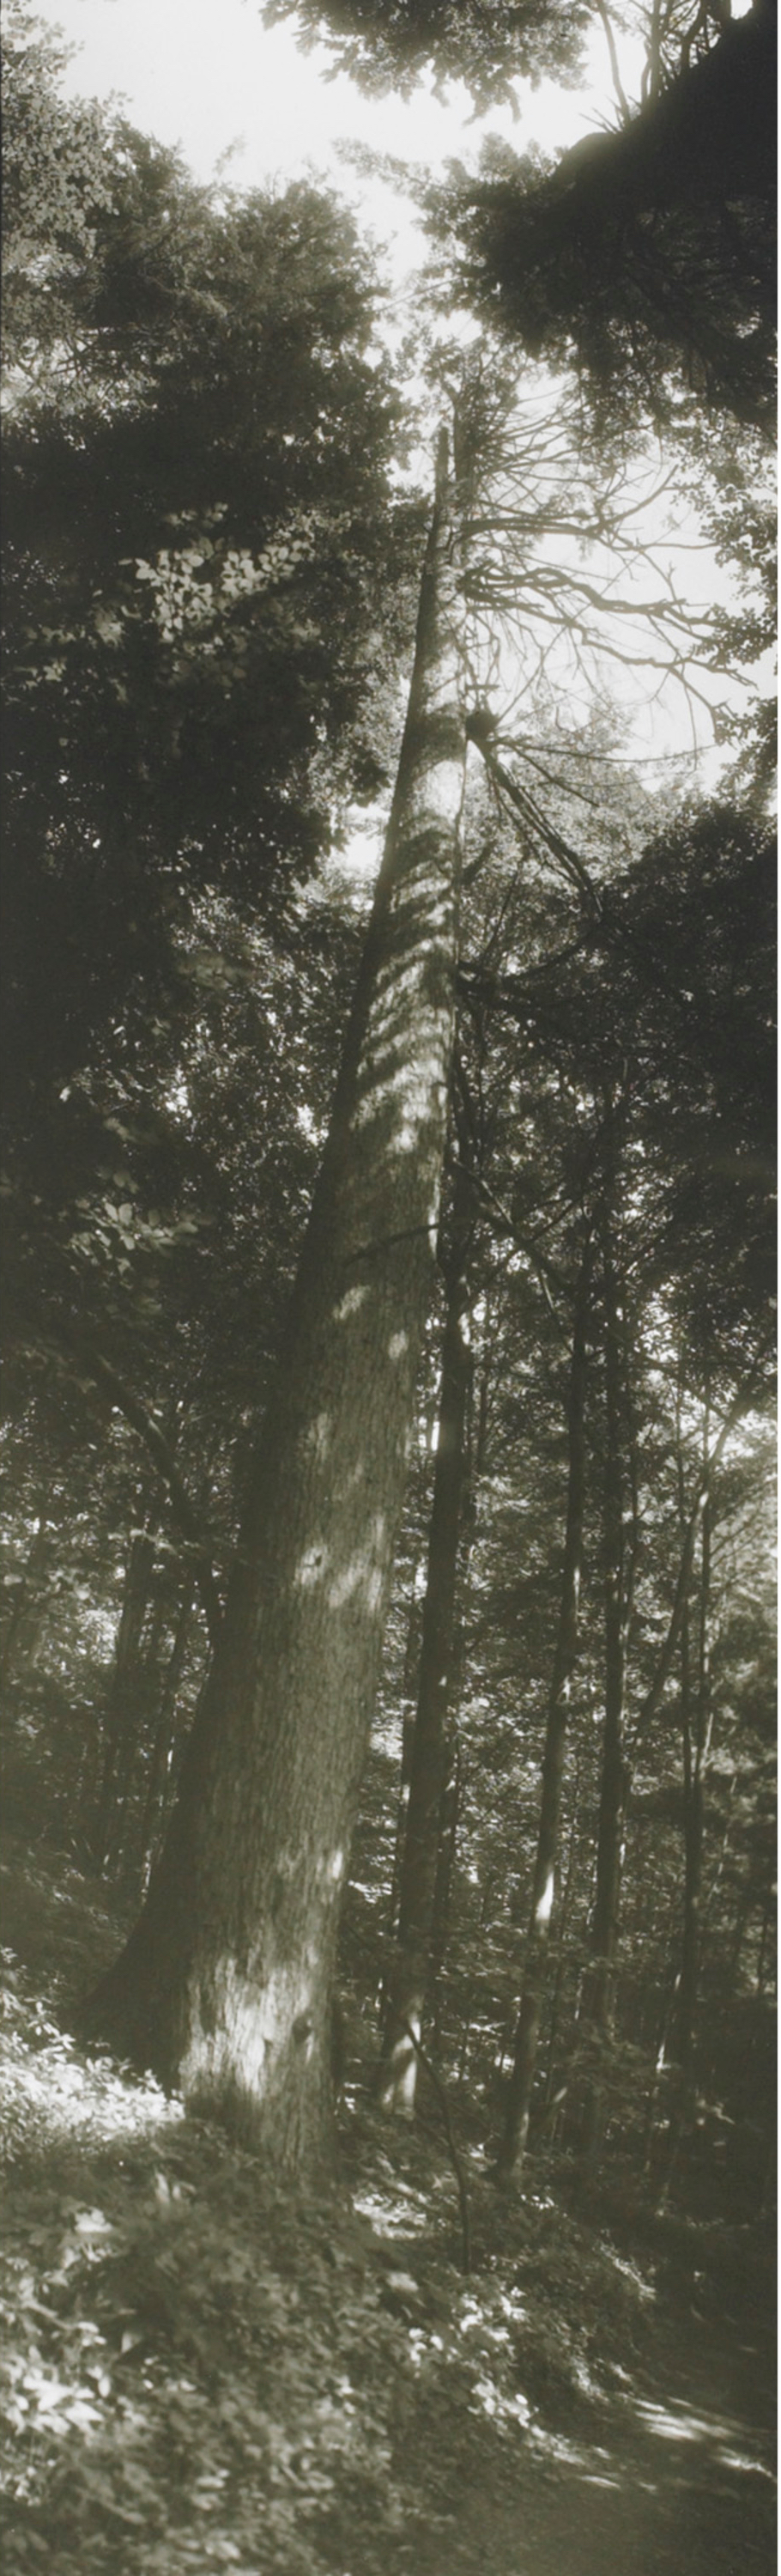 229_1_living_contemporary_april_2011_josef_sudek_vertical_panorama_with_tree__wright_auction